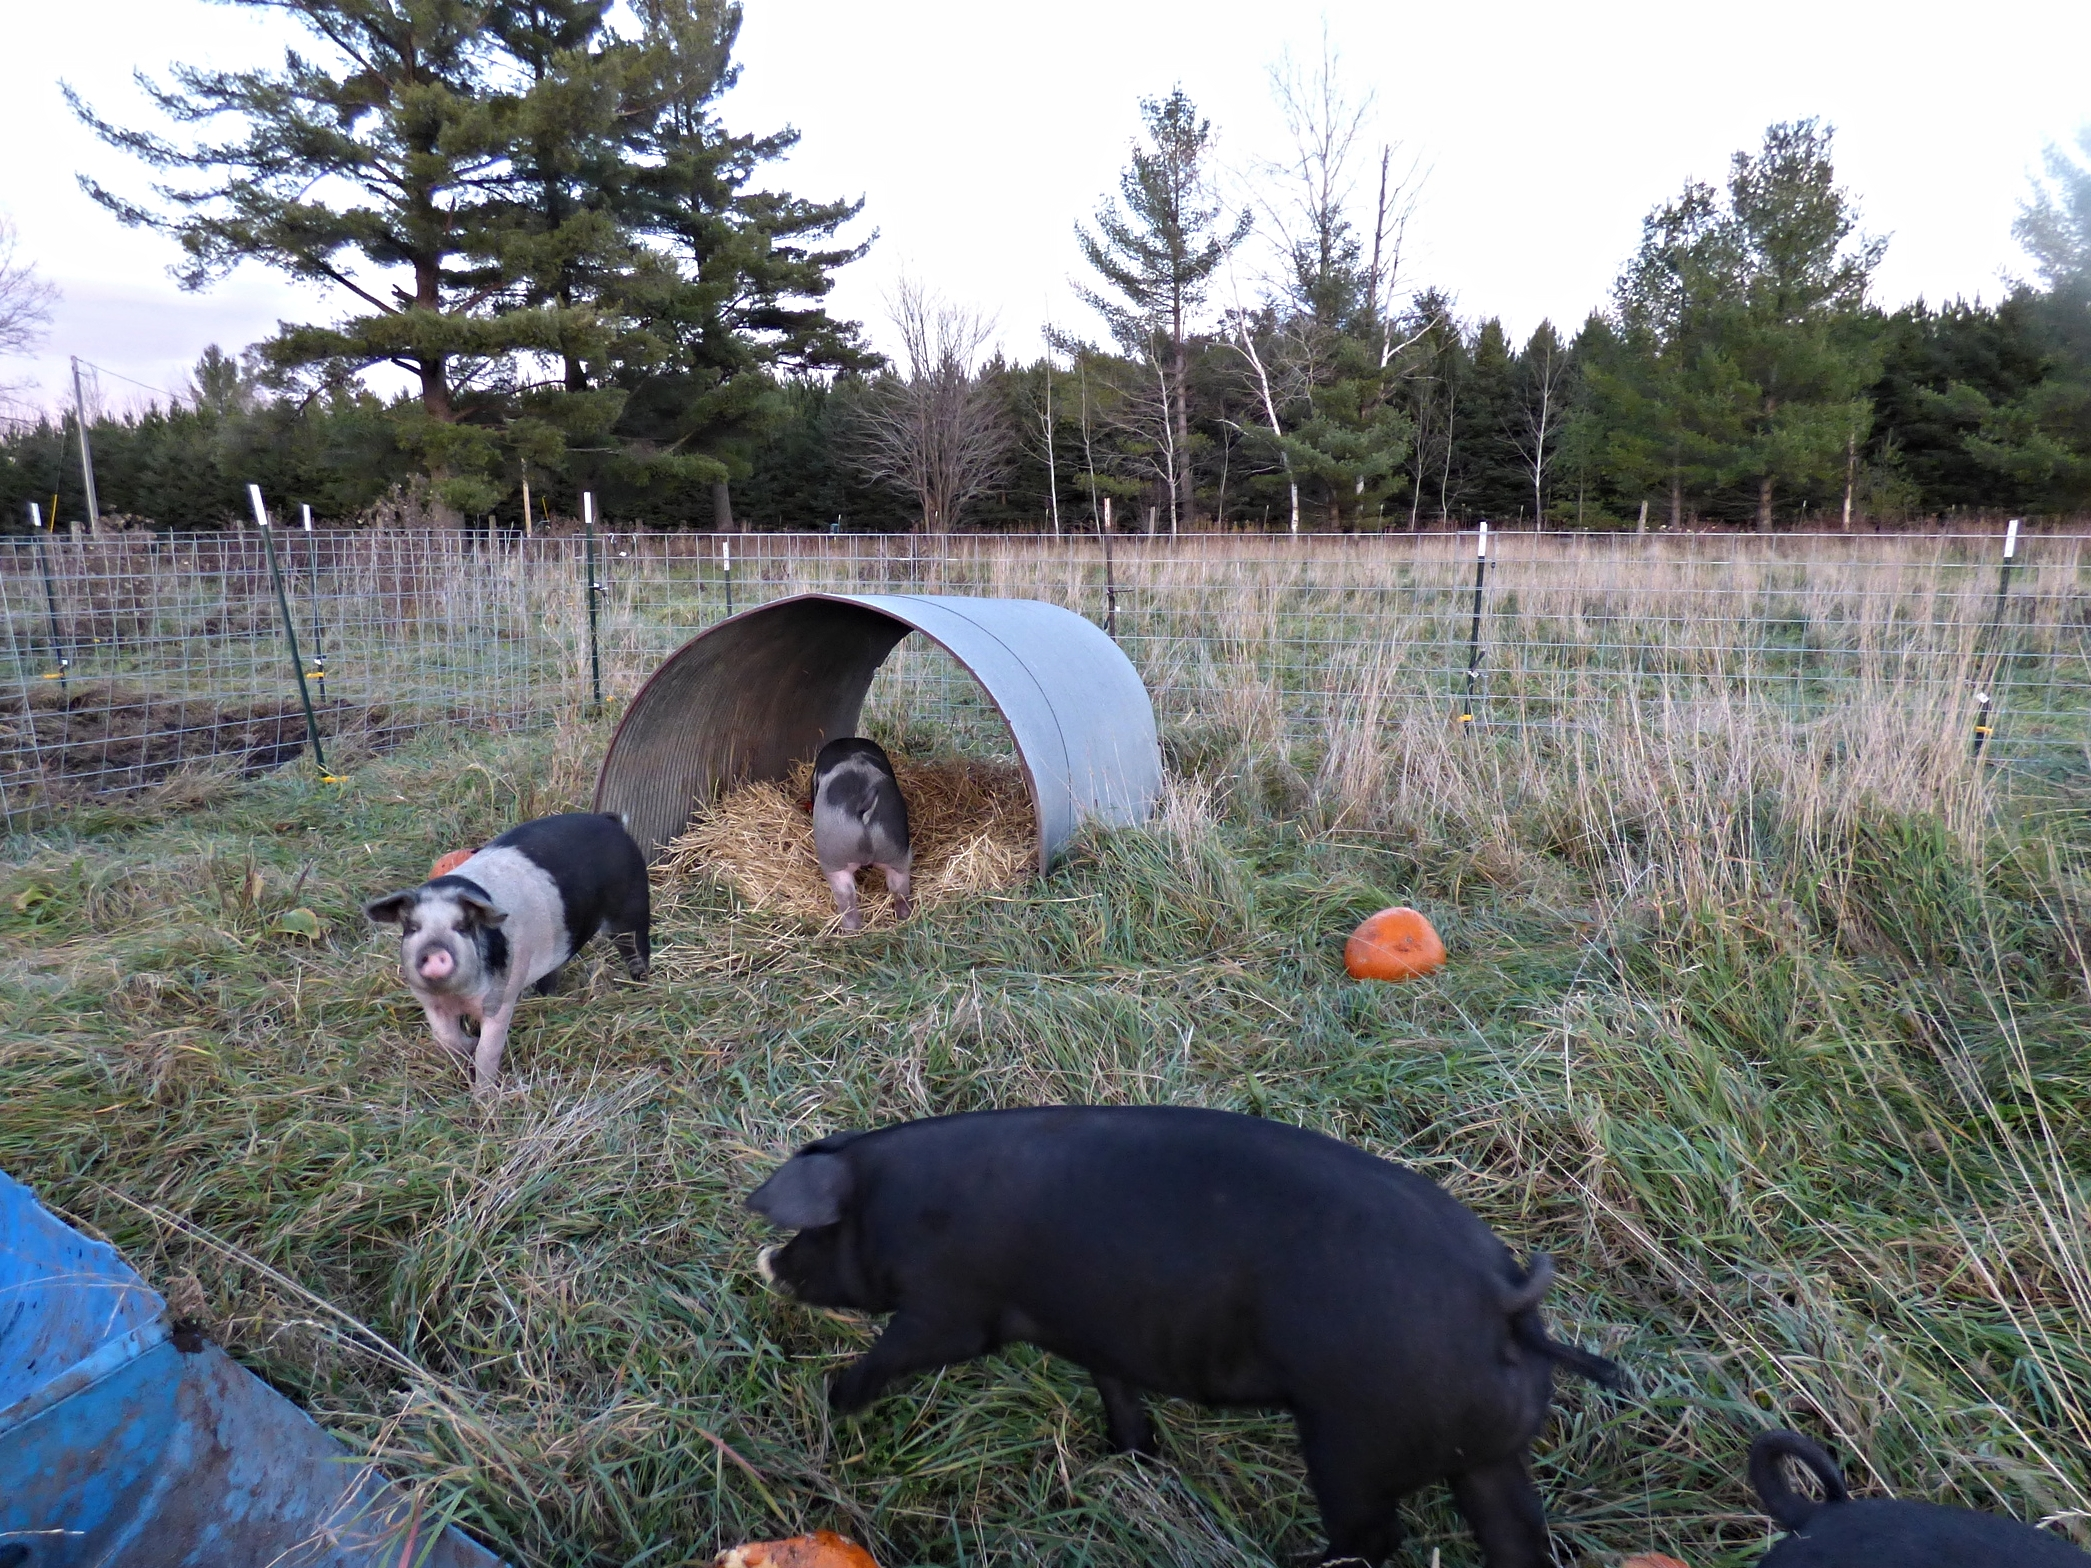 pastured pigs shelter and eating pumpkins